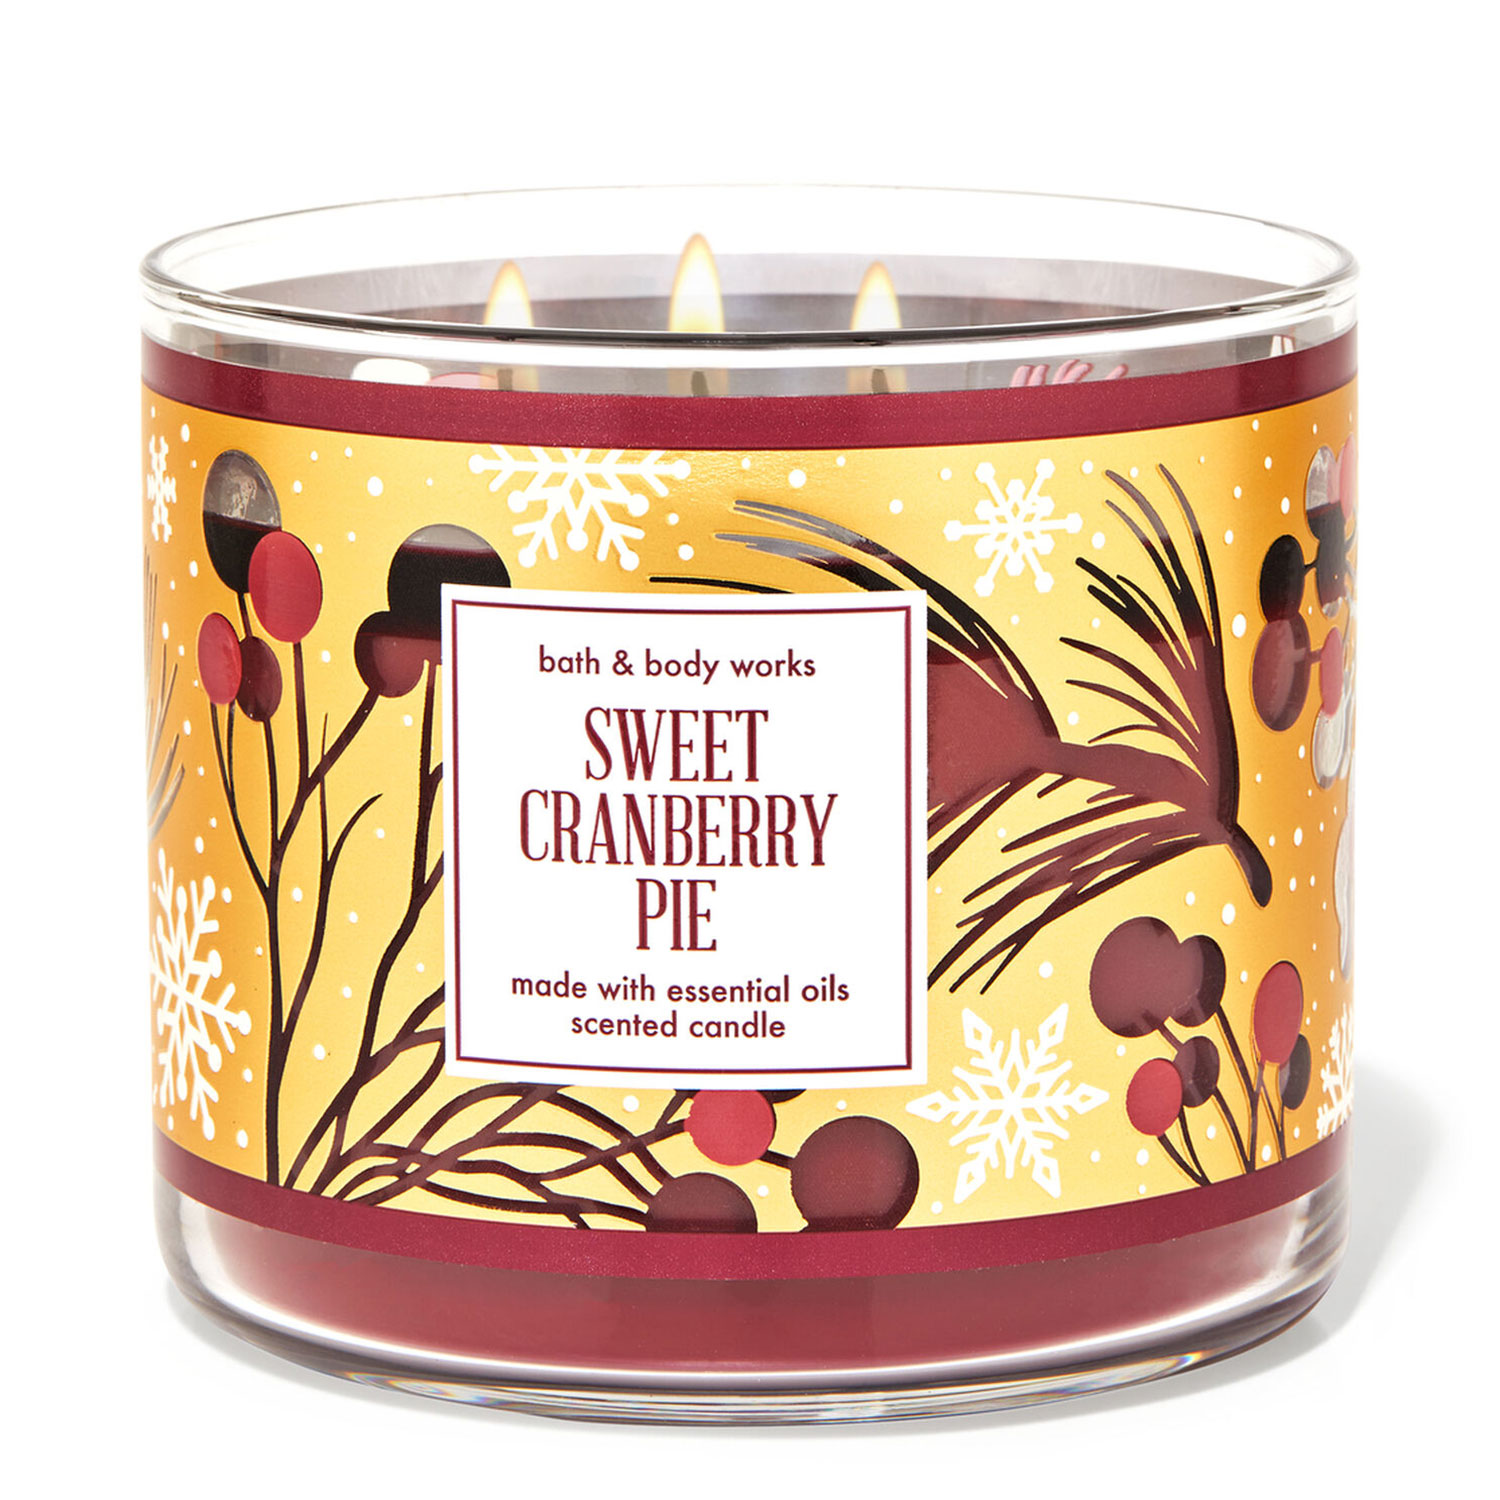 sweet cranberry pie candle